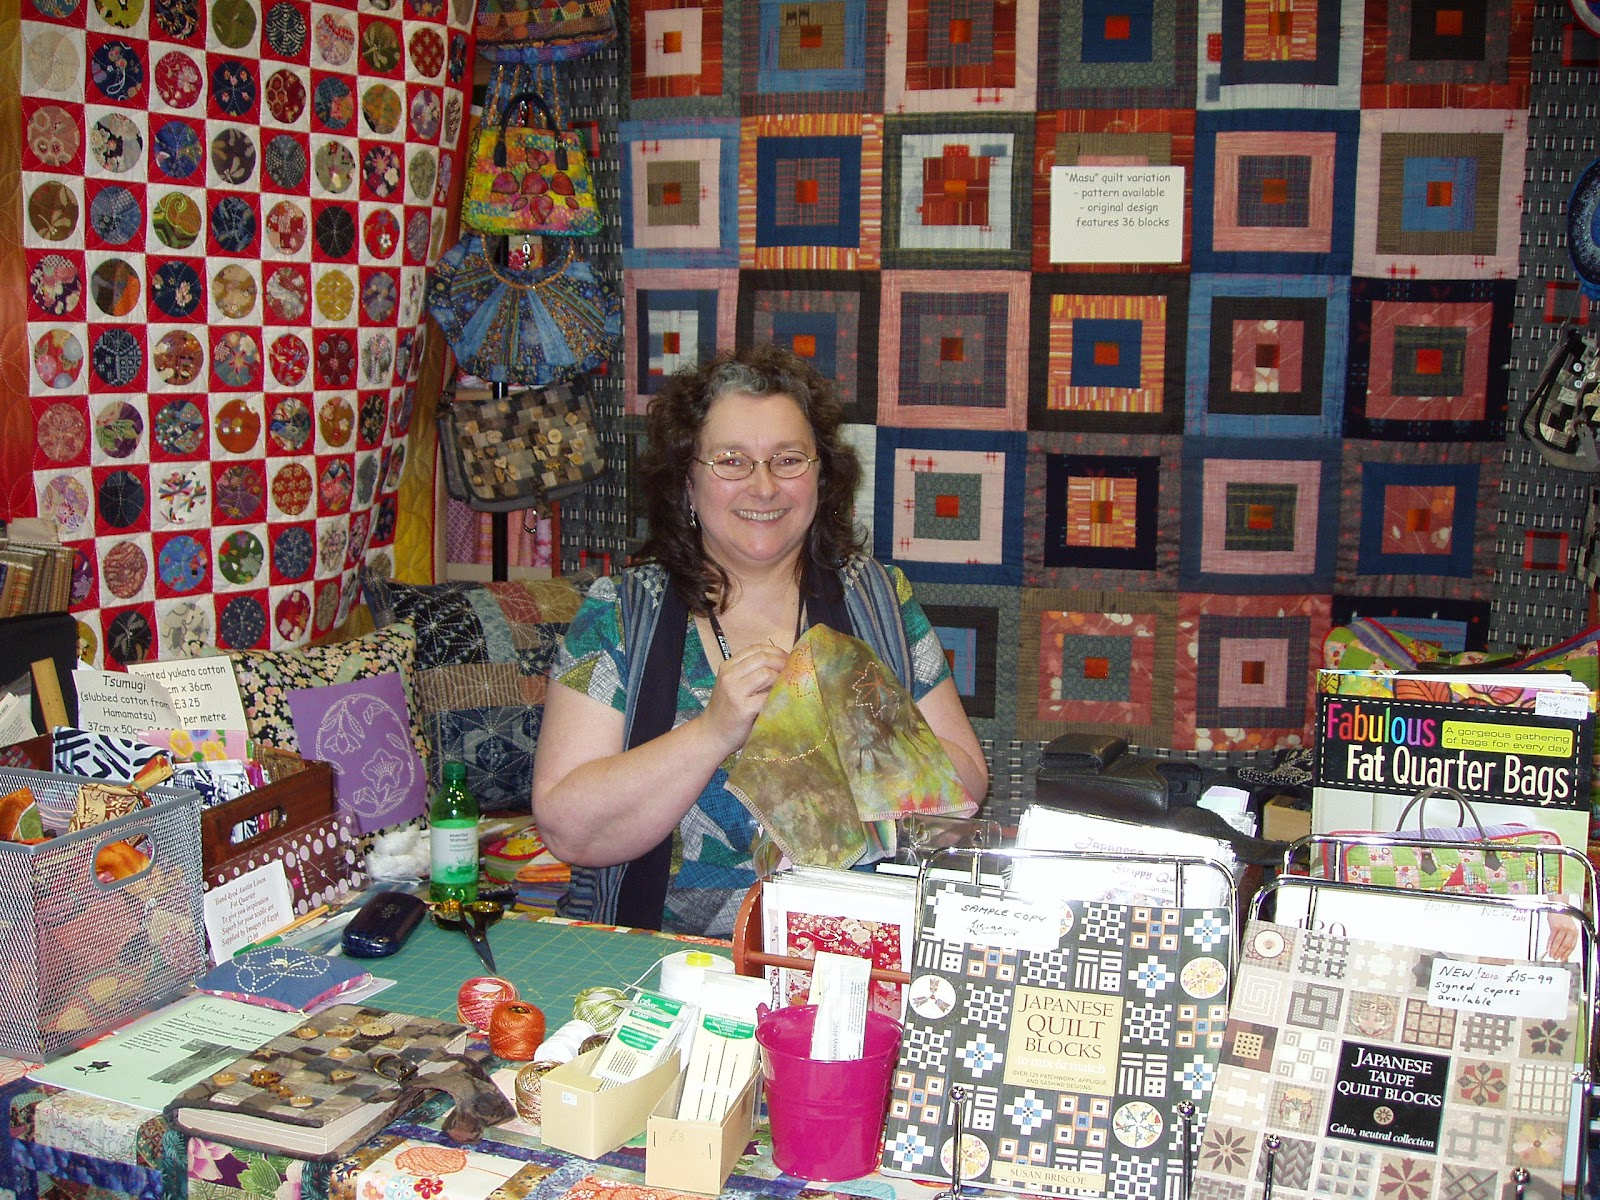 sashiko and other stitching: The National Quilt Championships ... : sandown quilt show - Adamdwight.com